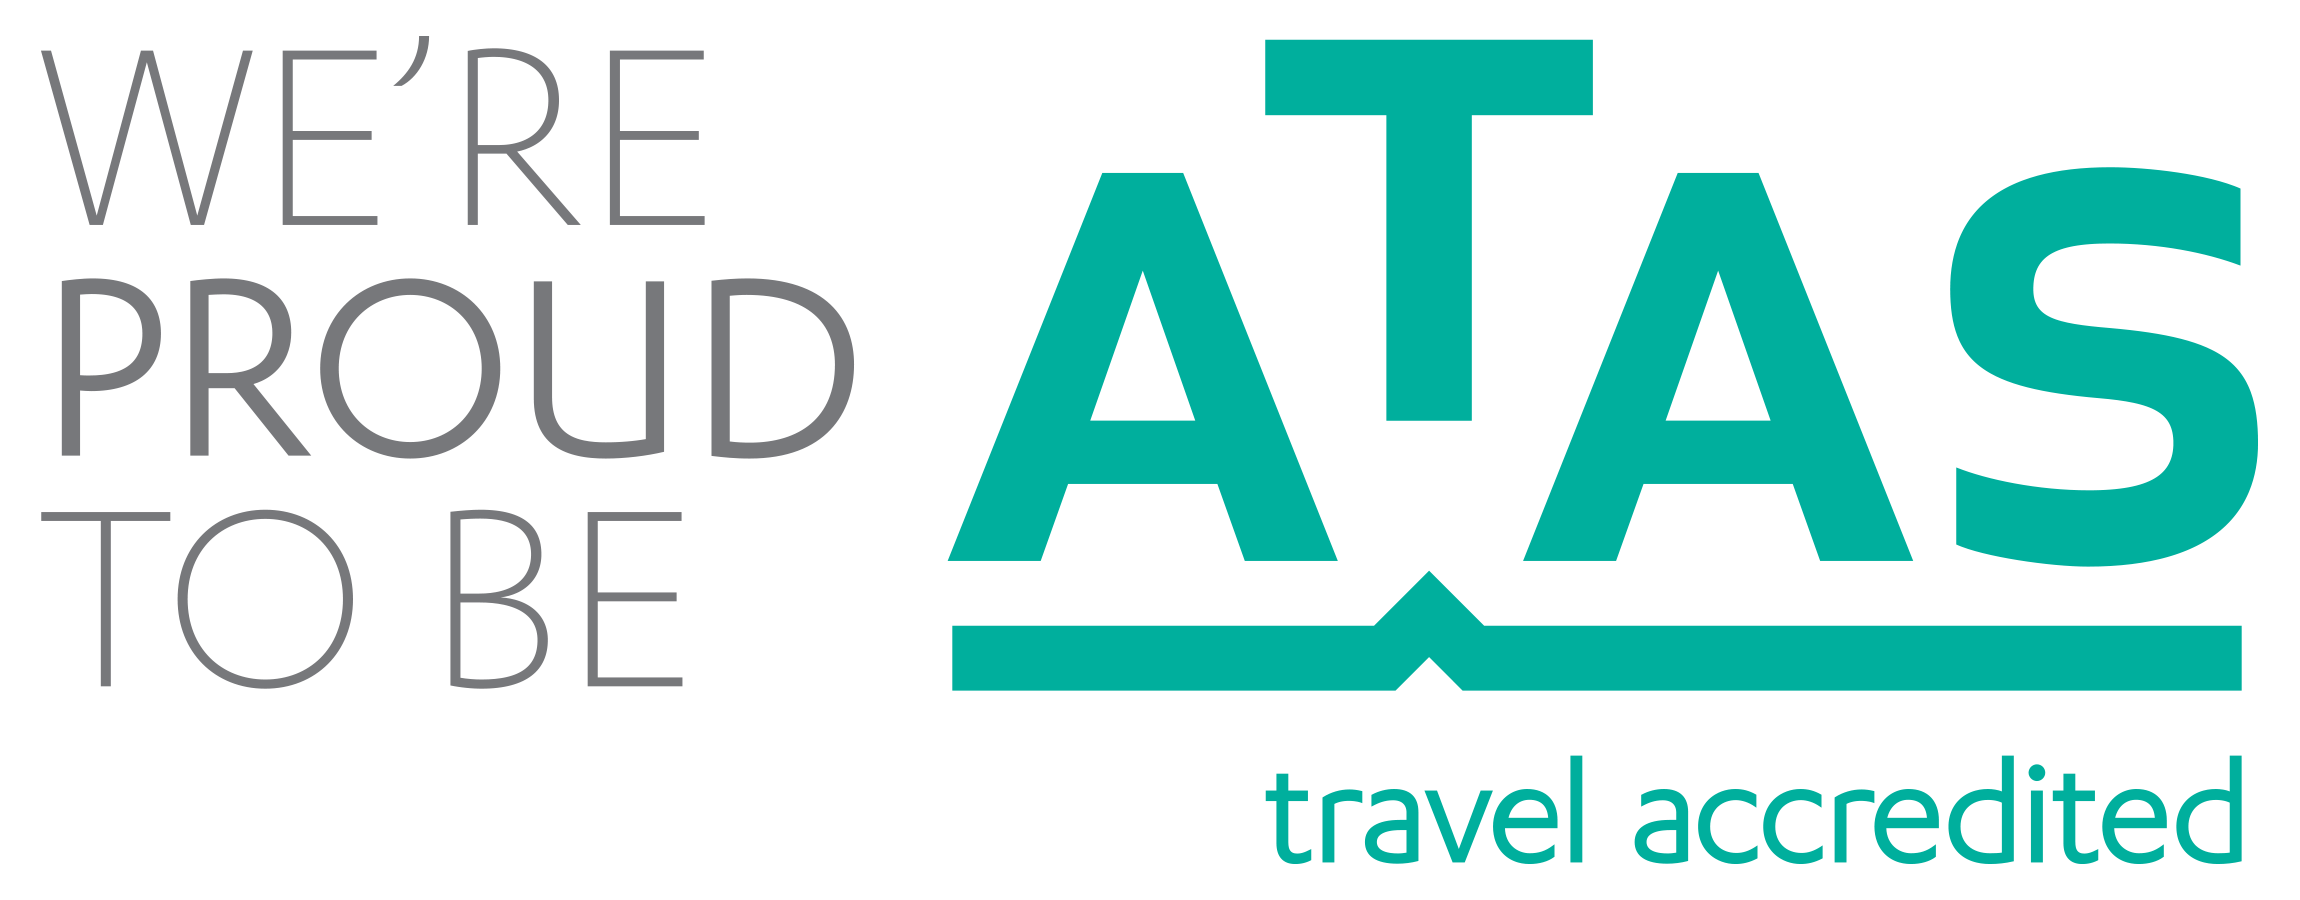 Travel Accredited_ATAS Logo Version_Landscape.png